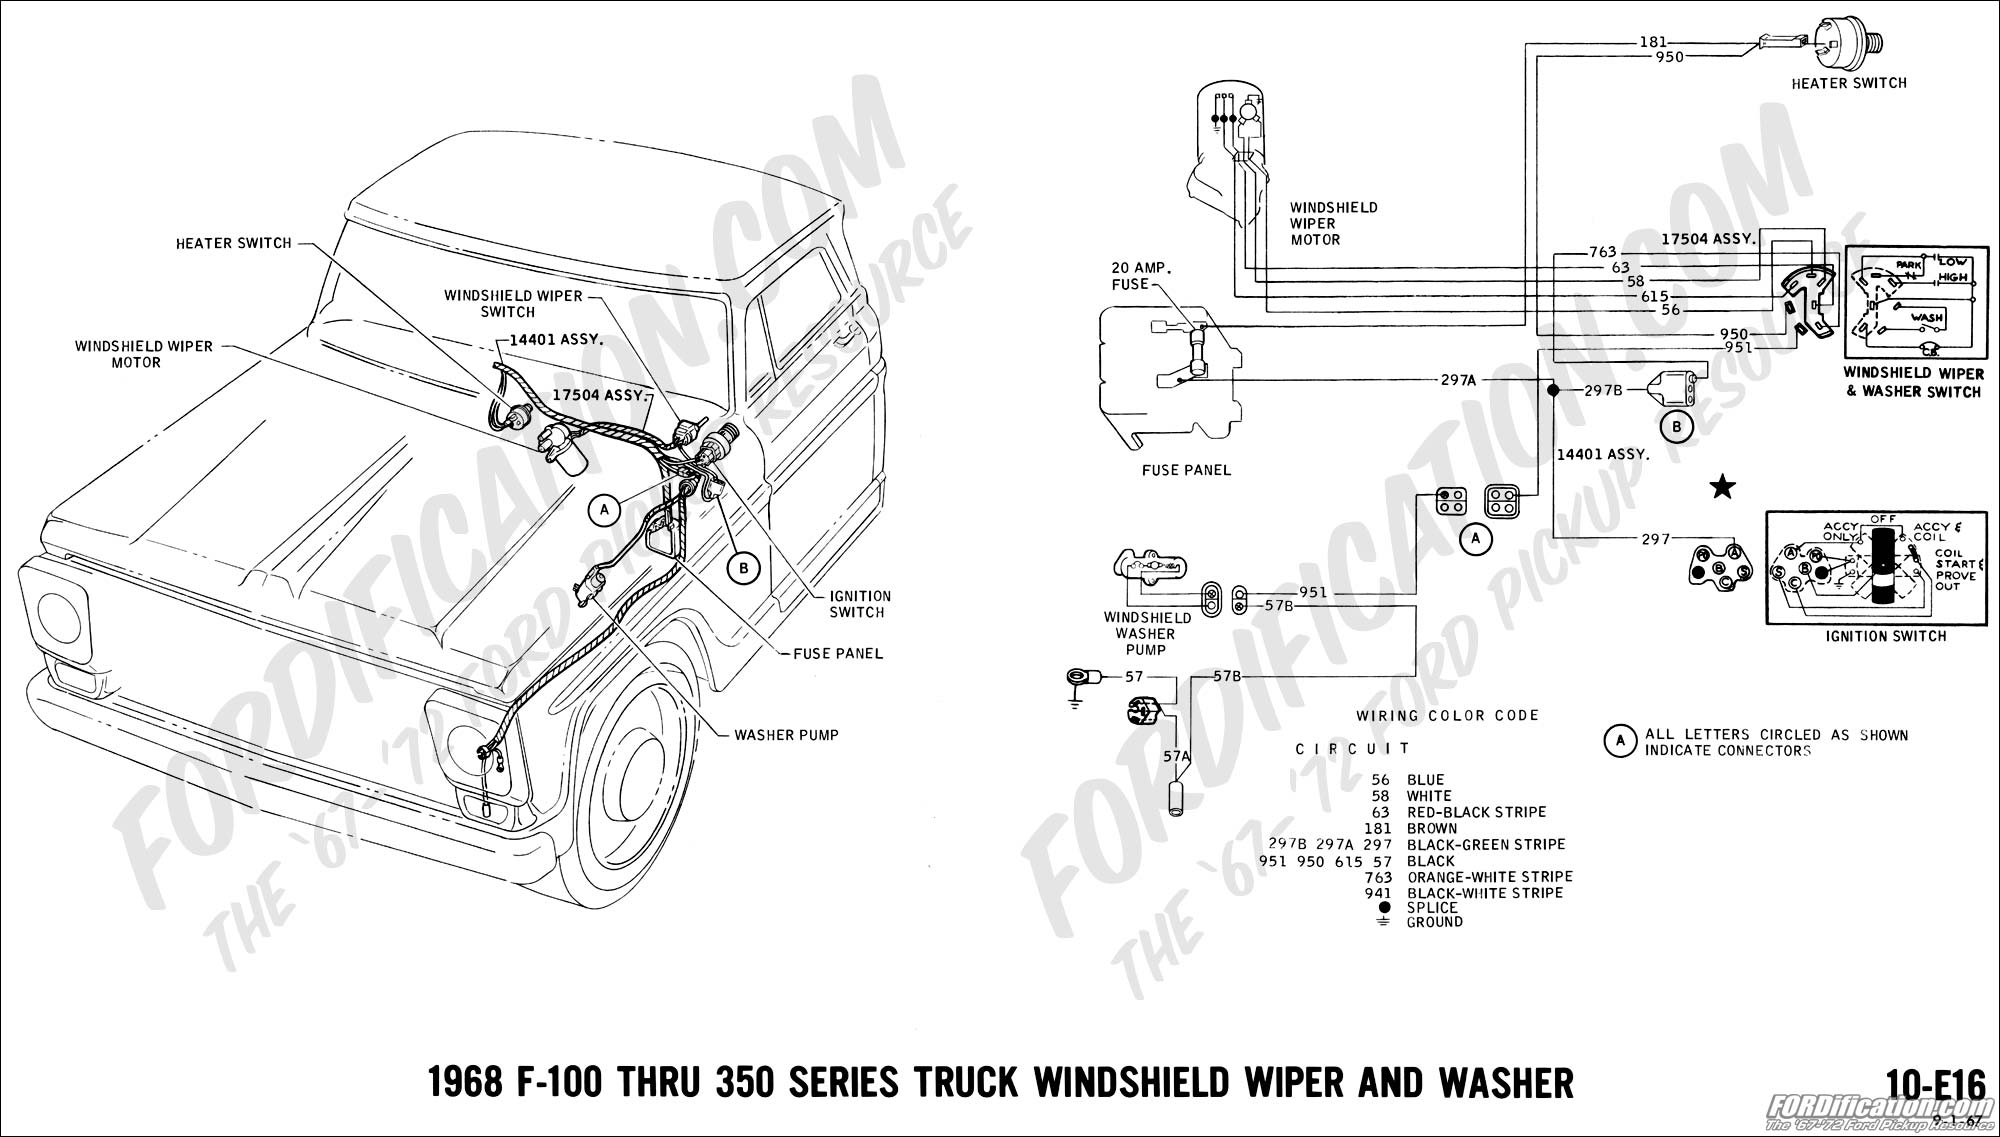 1994 Honda Accord Wiring Diagram 2002 Vw Beetle Wiper Relay Location Of Fuse Box Rh 57 Skriptoase De